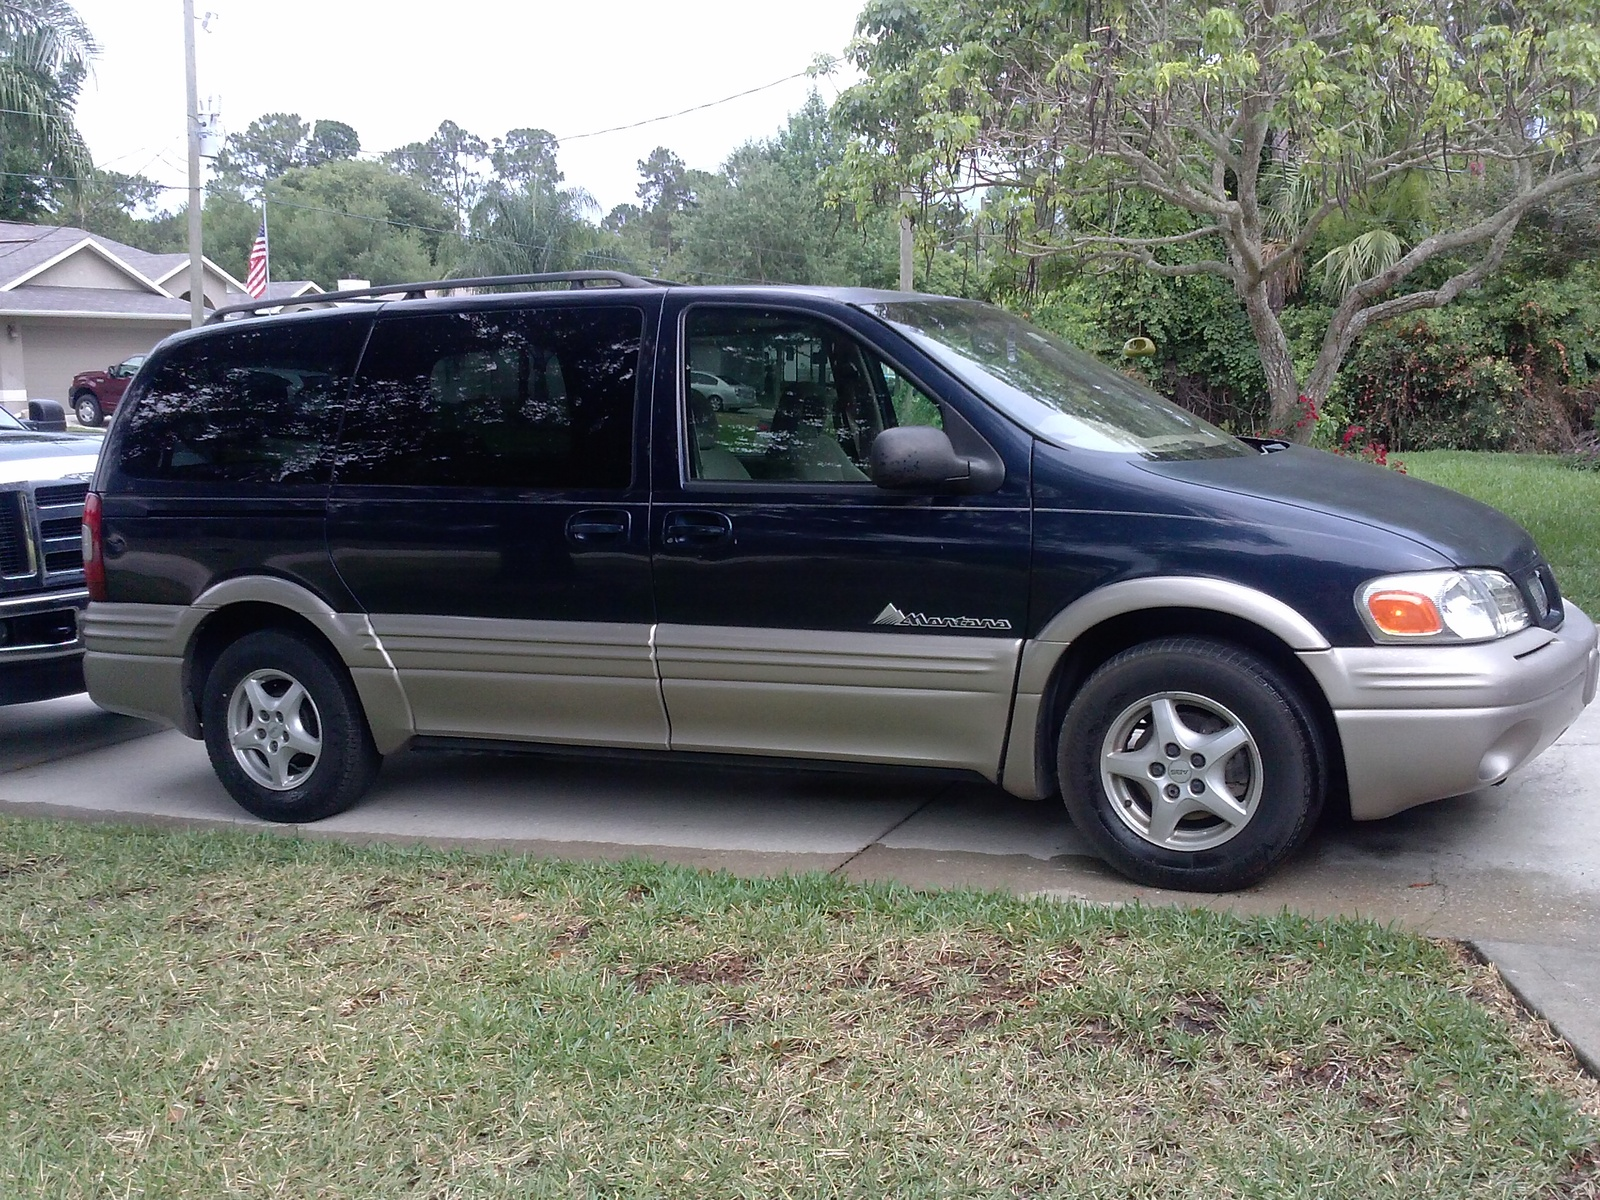 Picture of 1999 Pontiac Montana 4 Dr STD Passenger Van Extended